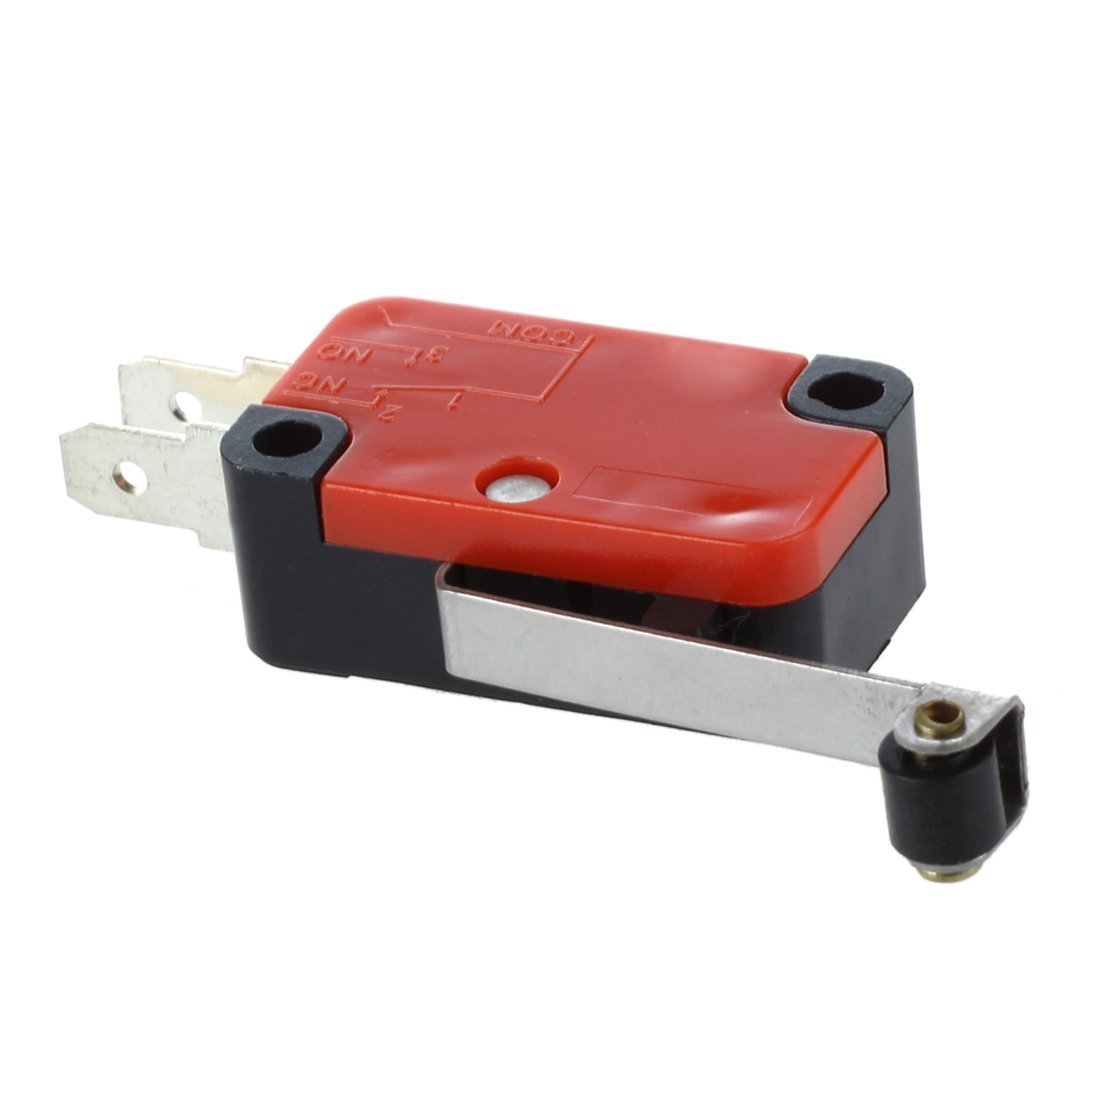 SODIAL(R) 15A Microinterruptor accion brusca V-156-1C25 pin embolo (SPDT Micro Switch)